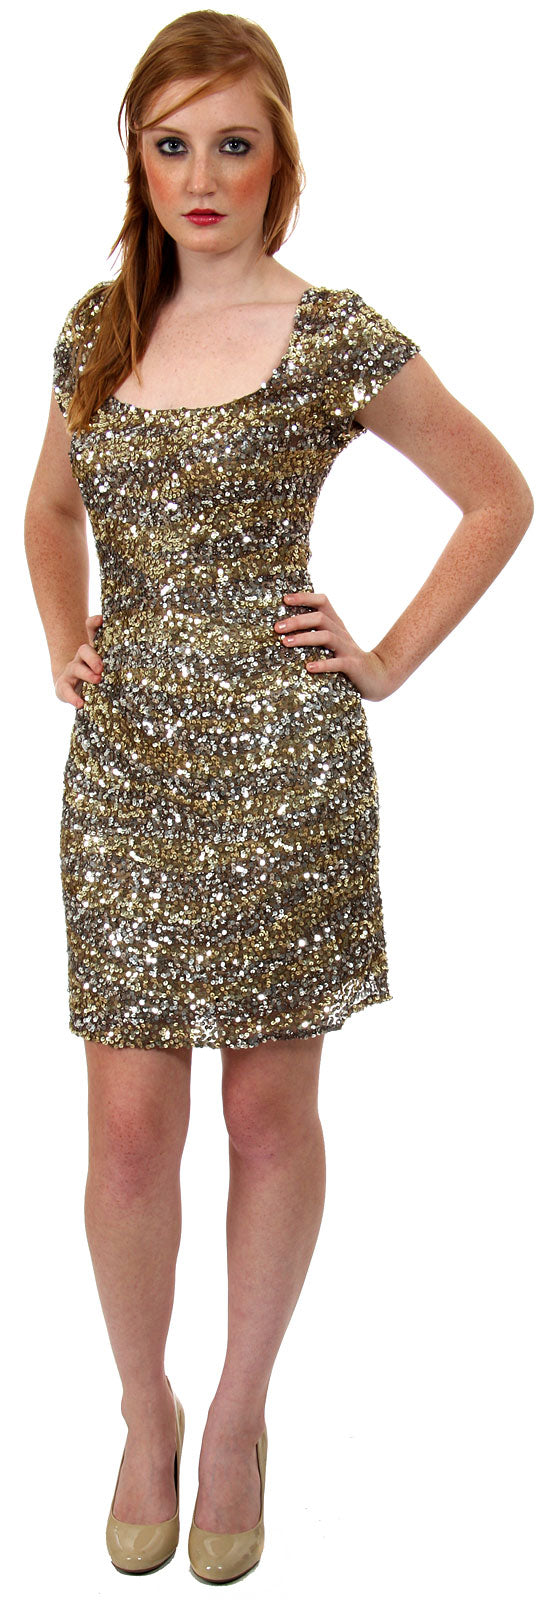 Image of U-neck Short Sleeves Sequined Prom Cocktail Dress in Bronze